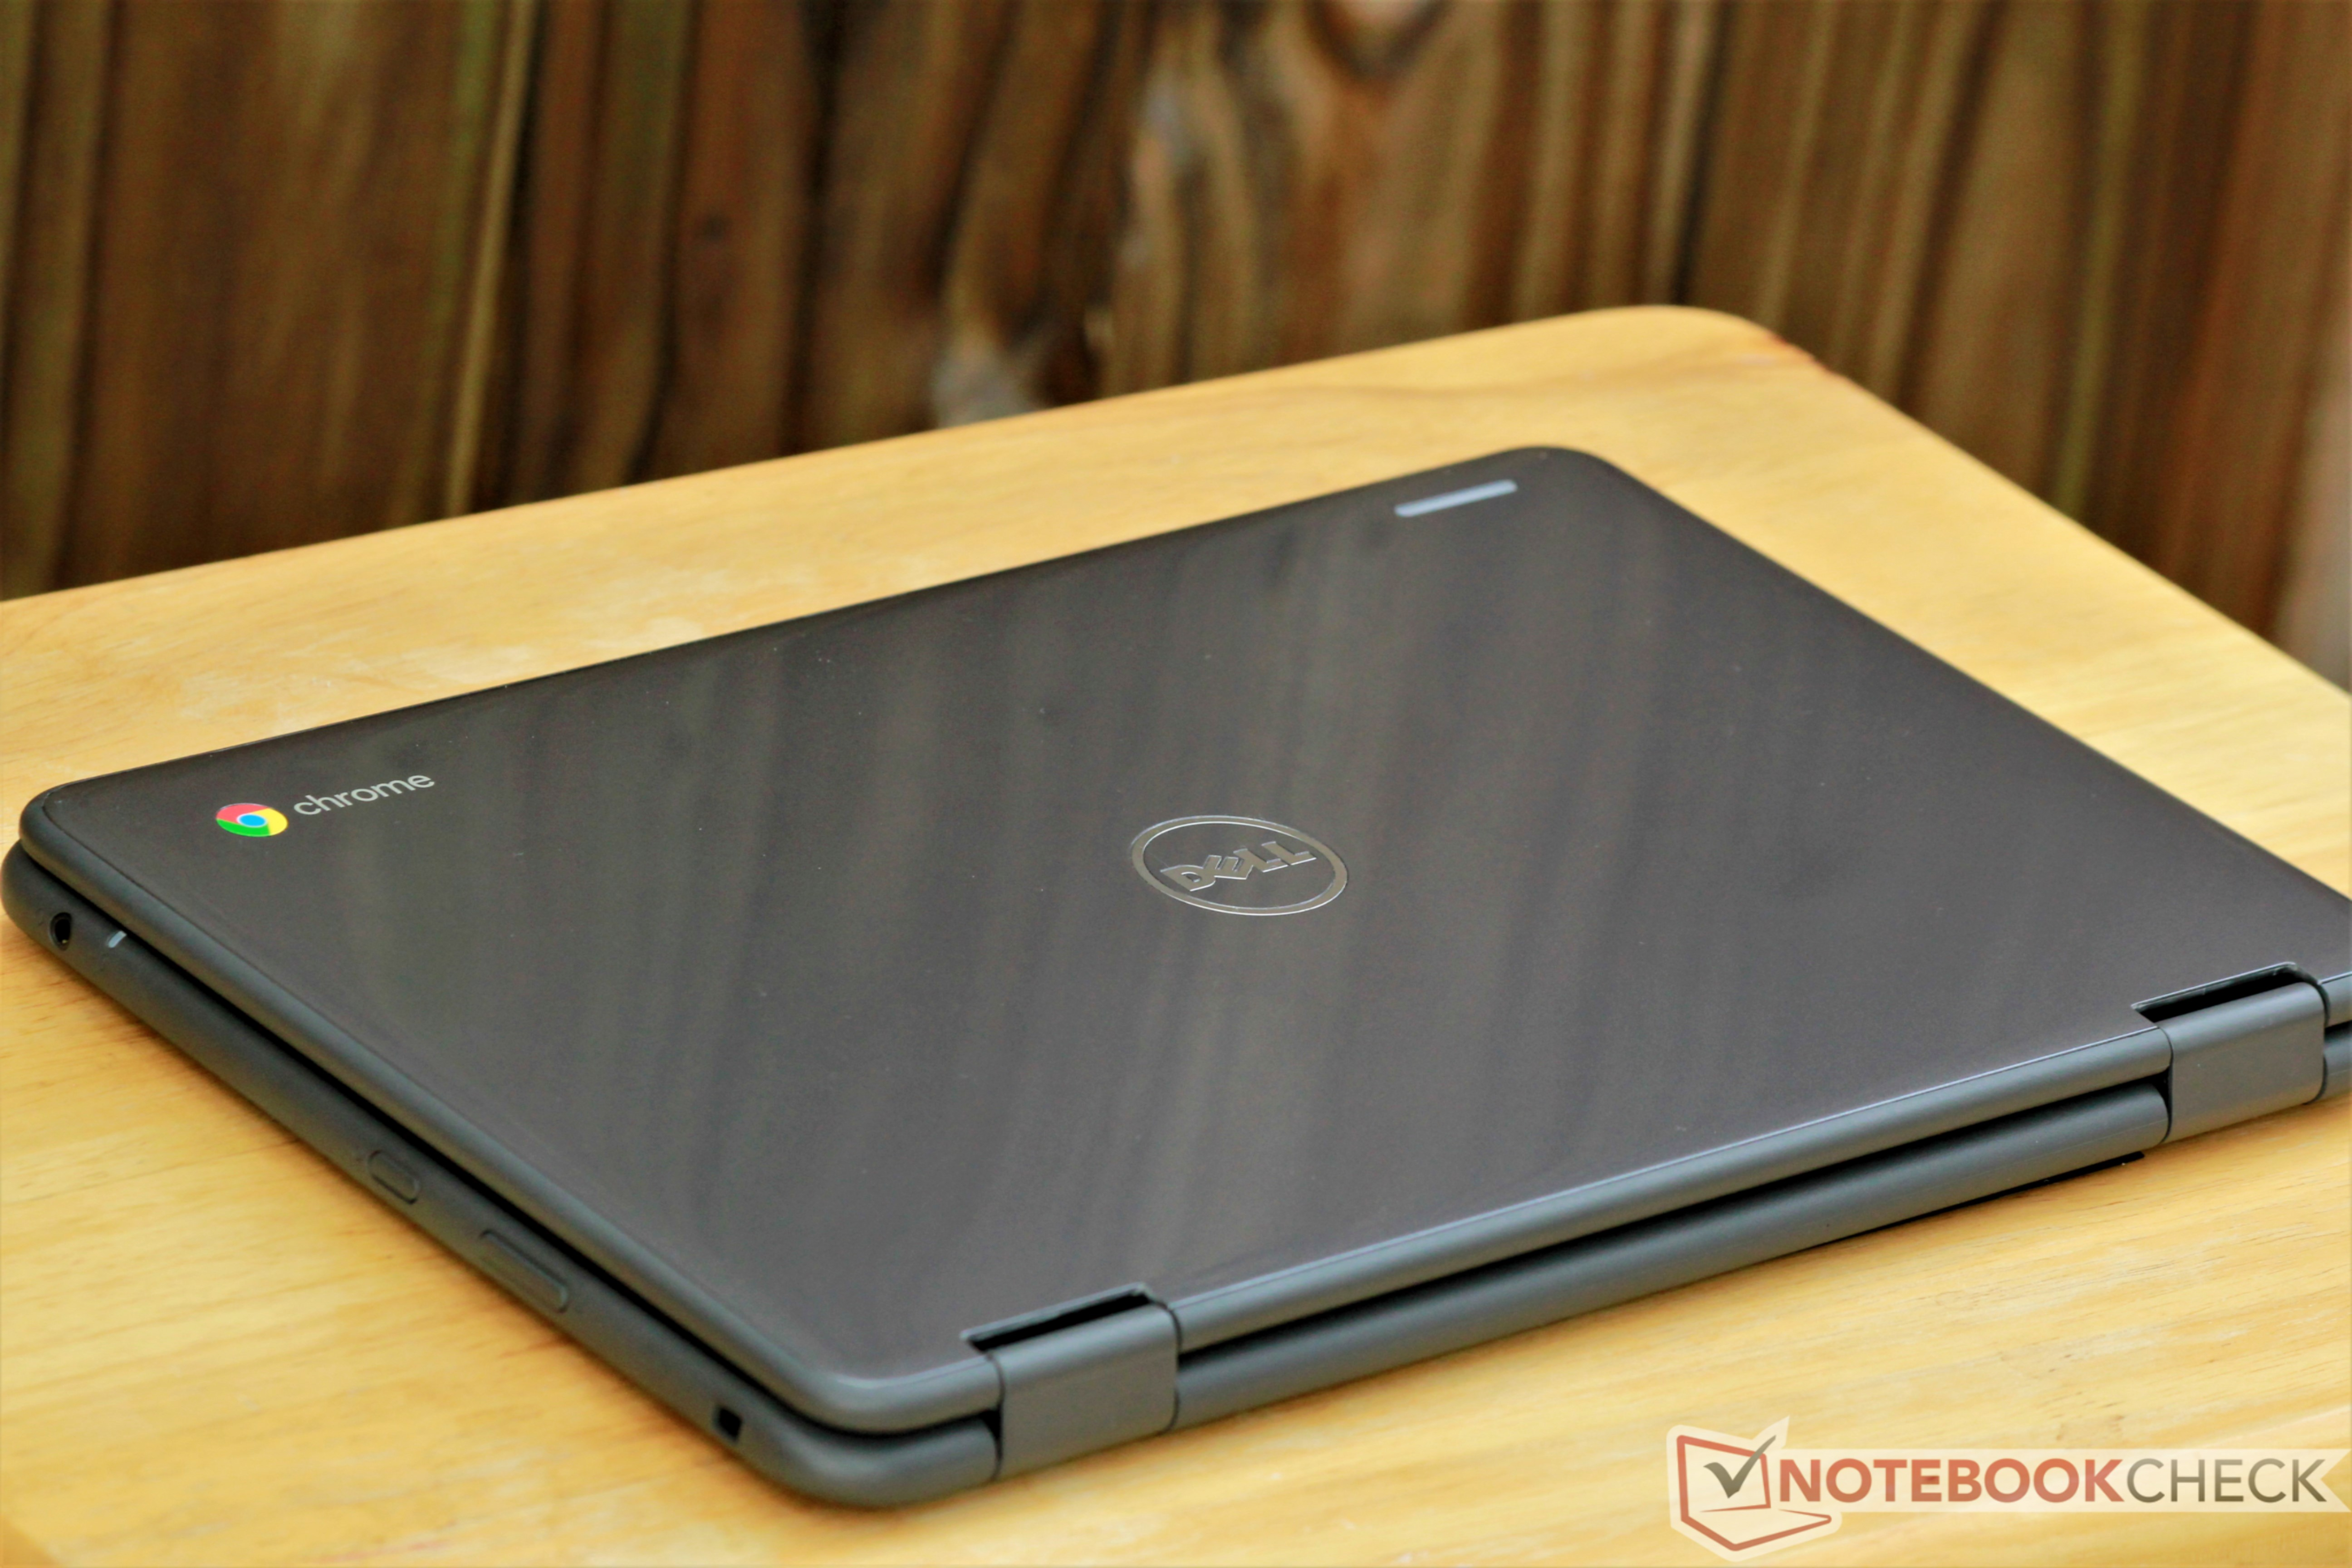 Dell Chromebook 11 3181 2-in-1 (Celeron N3060) Convertible